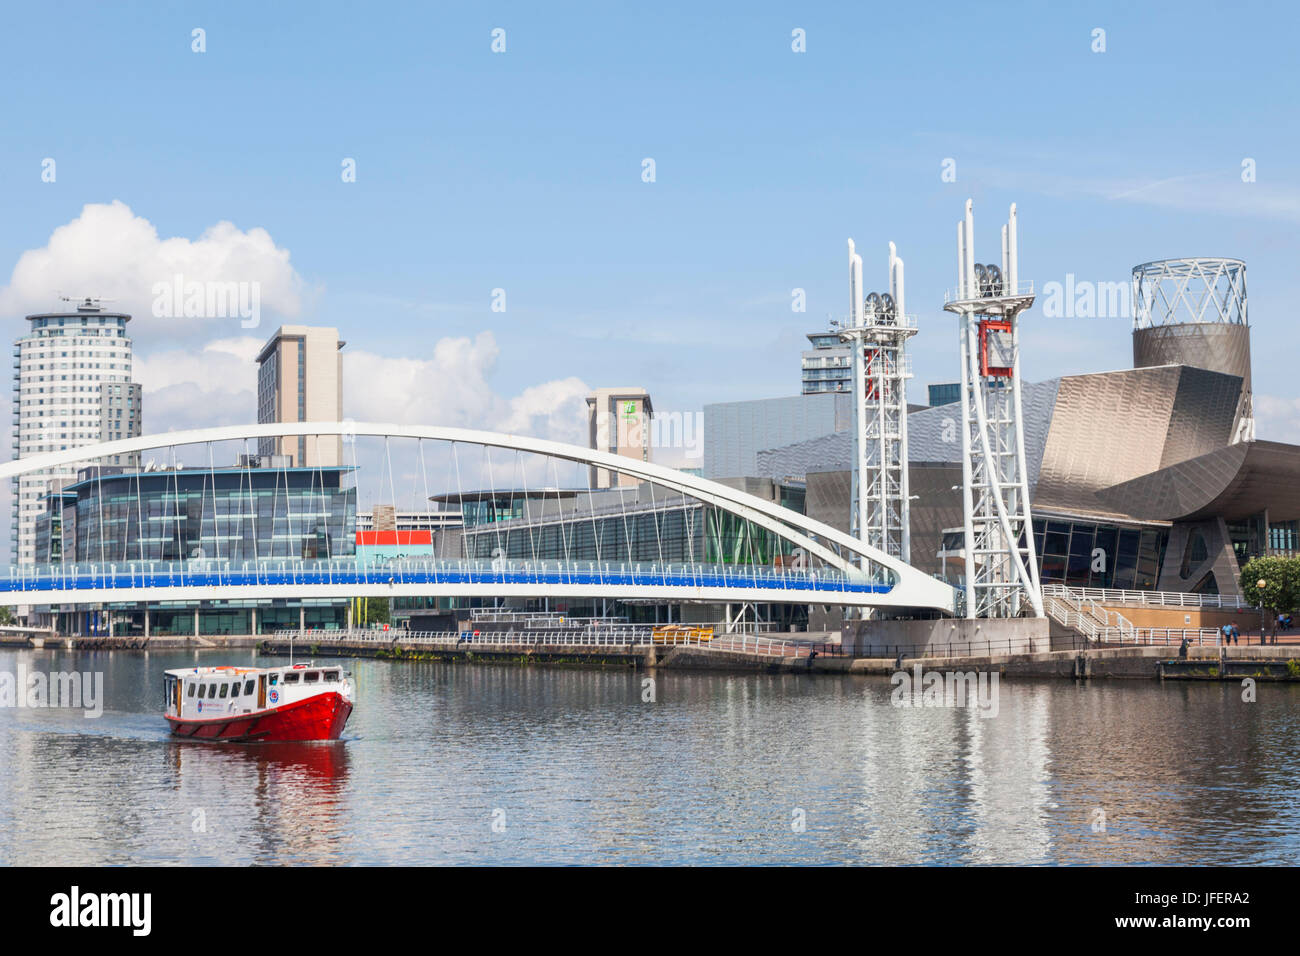 England, Manchester, Salford, The Quays, The Lowry and Millenium Lift Bridge - Stock Image